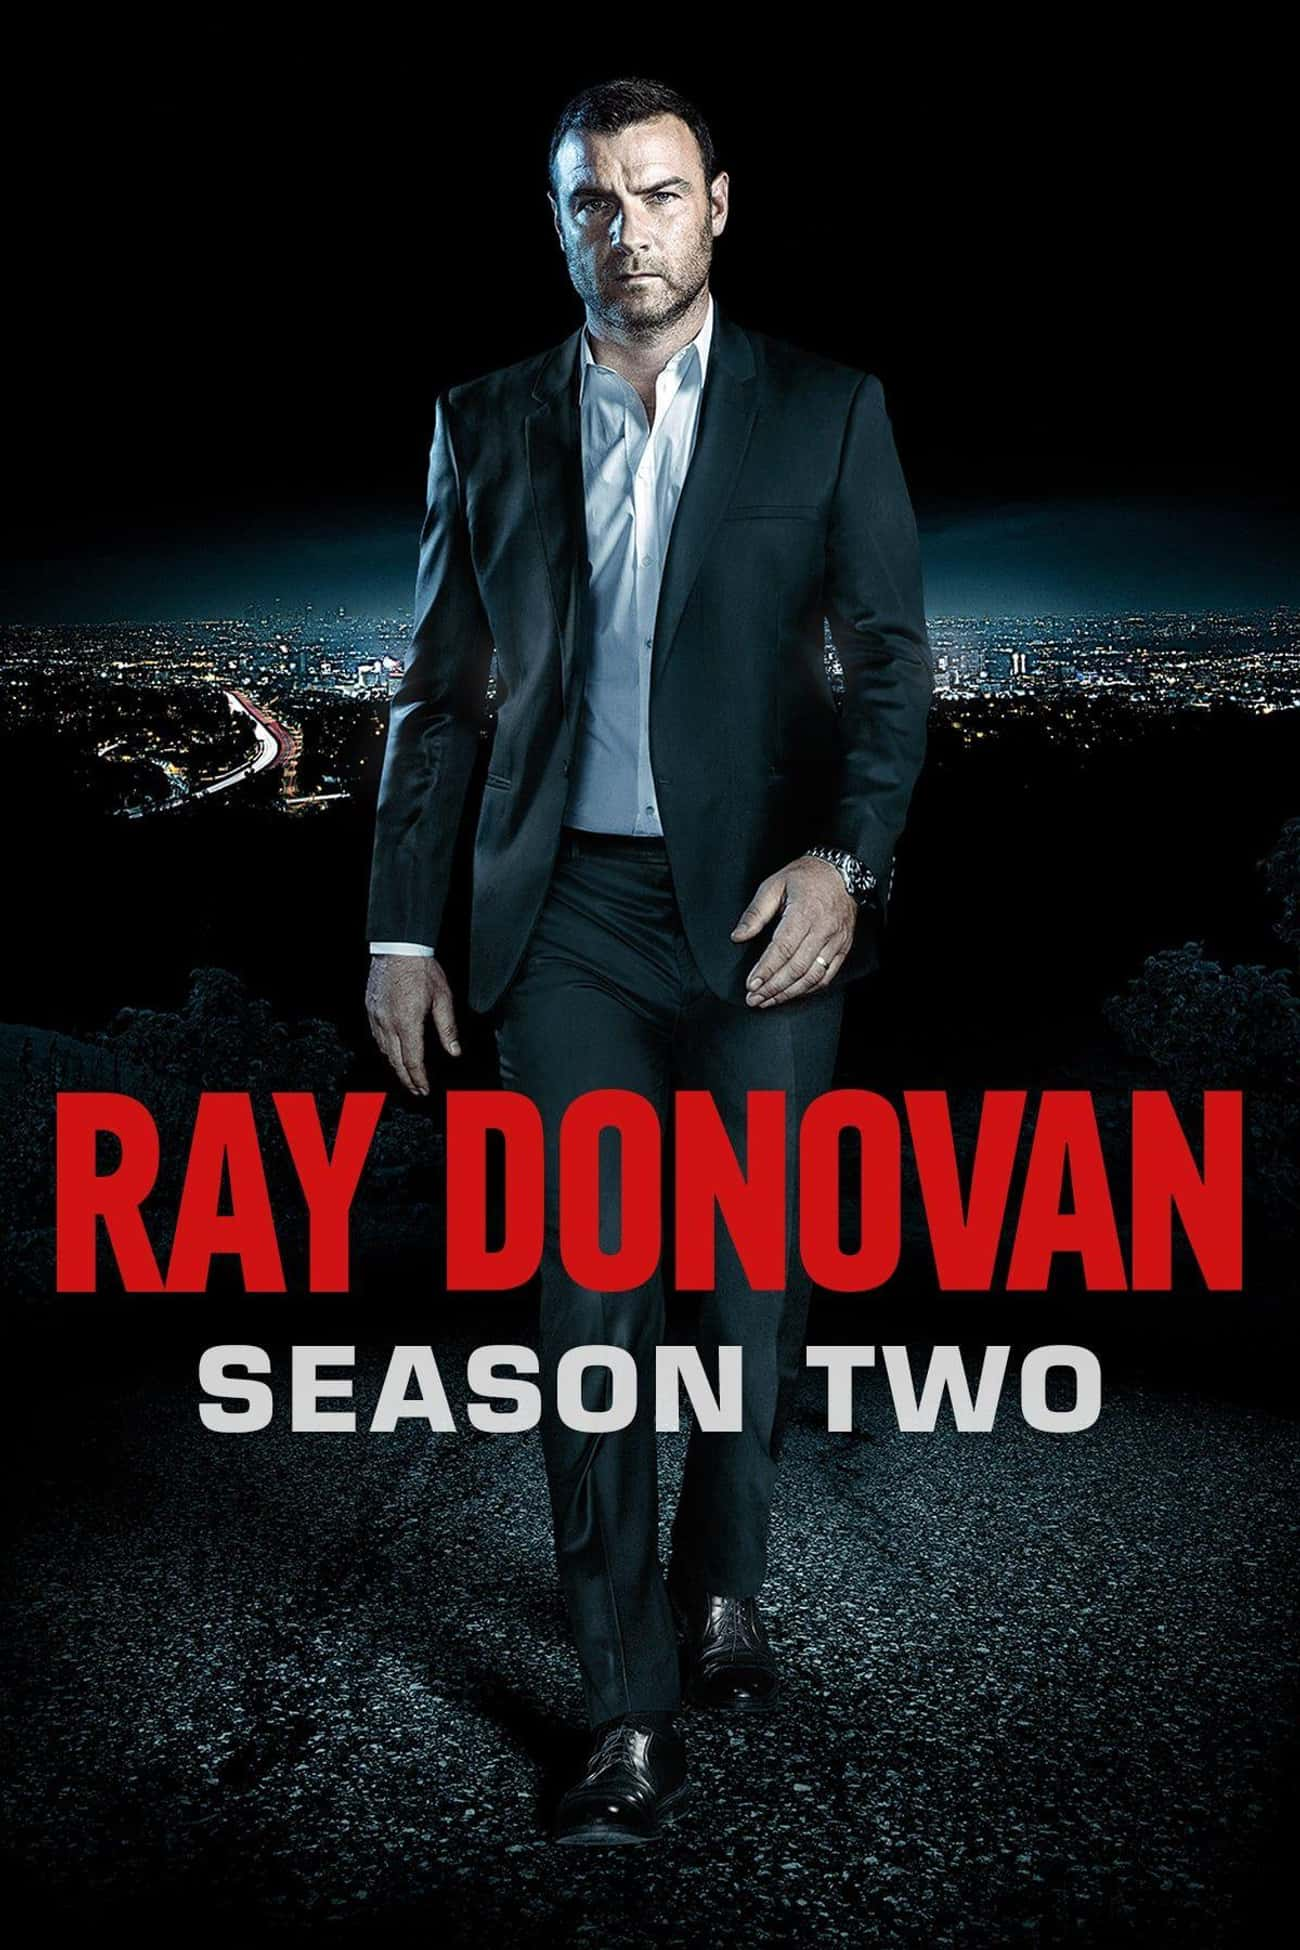 Ray Donovan - Season 2 is listed (or ranked) 2 on the list Ranking the Best Seasons of 'Ray Donovan'